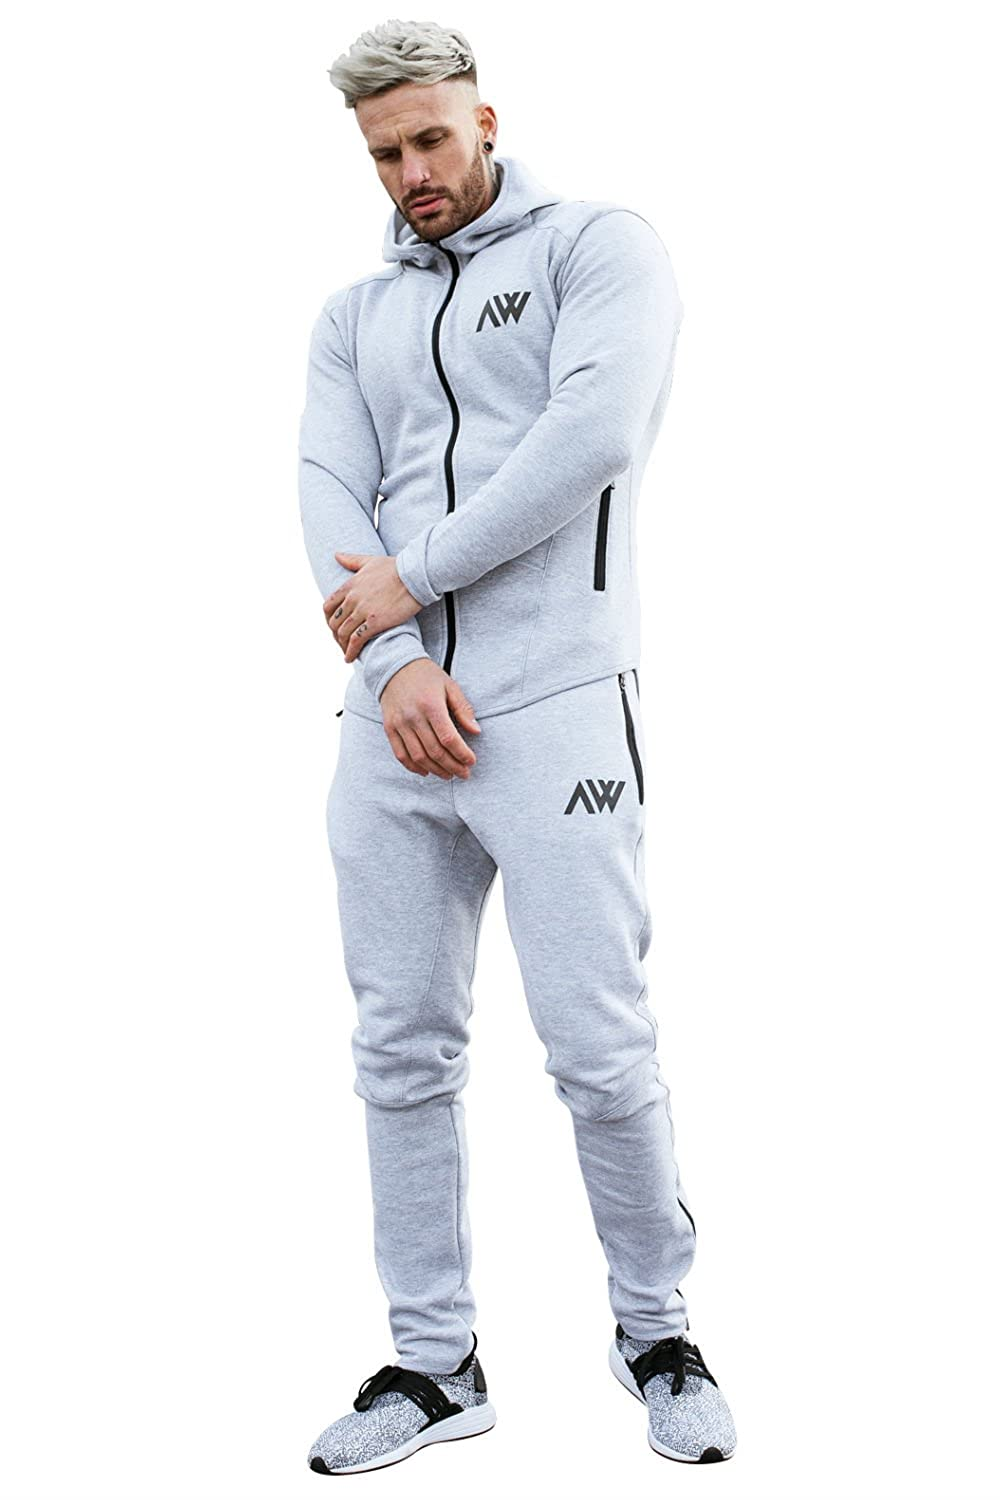 Aspire Wear Herren Trainingsanzug Lunar Grey Hoodie und Unterteile Set Gym Fitness Trainingsanzug Active Sport Stretch Slim Fit Top mit Jogginghose